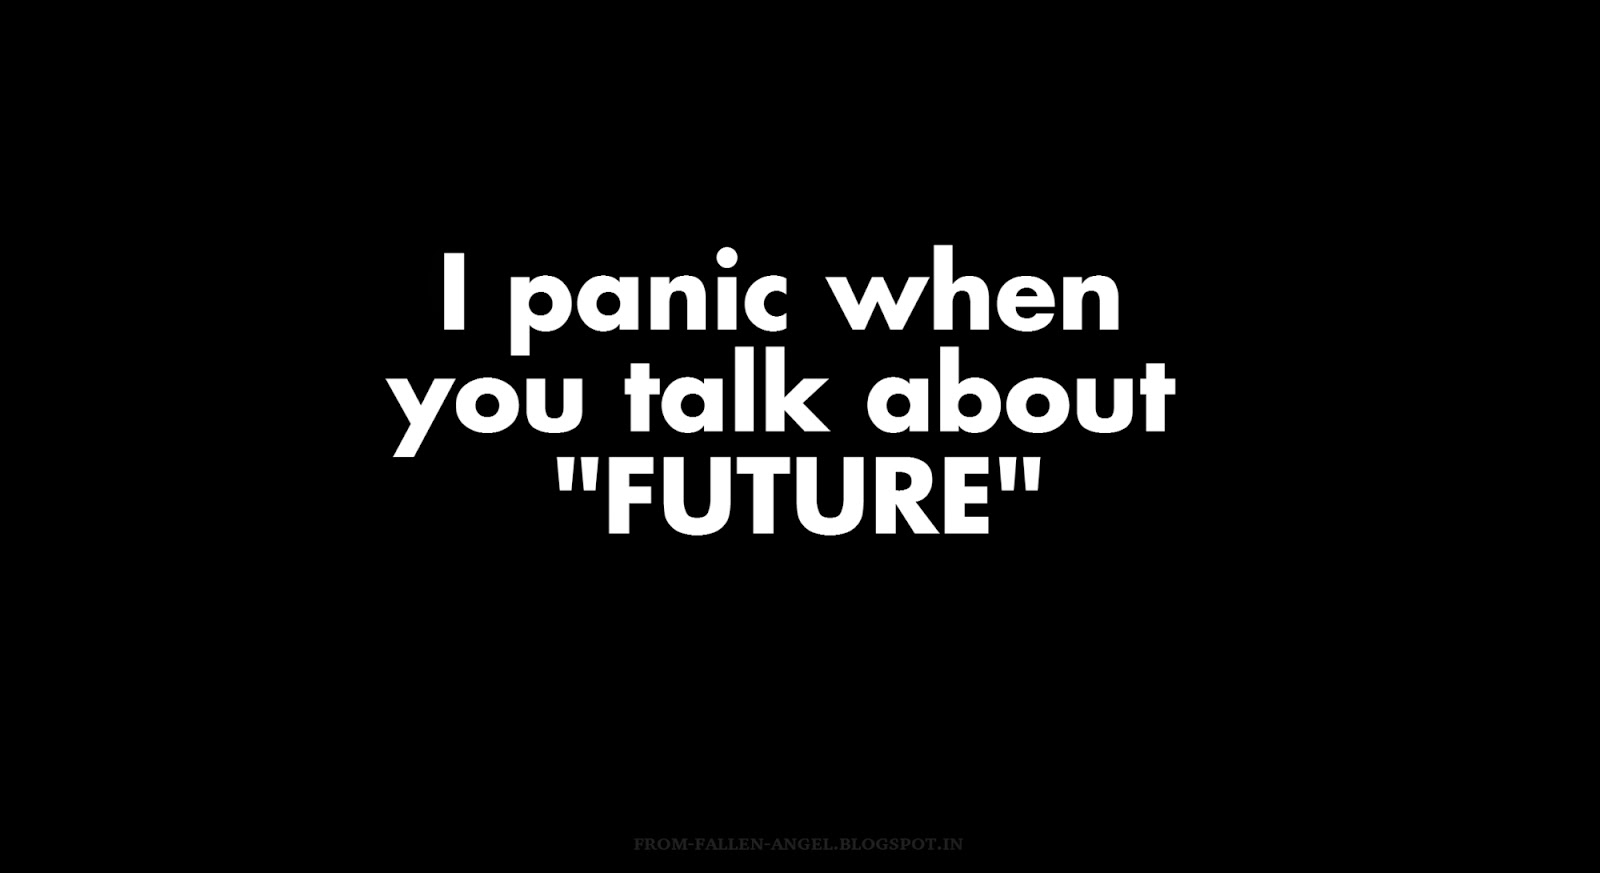 I panic when you talk about future